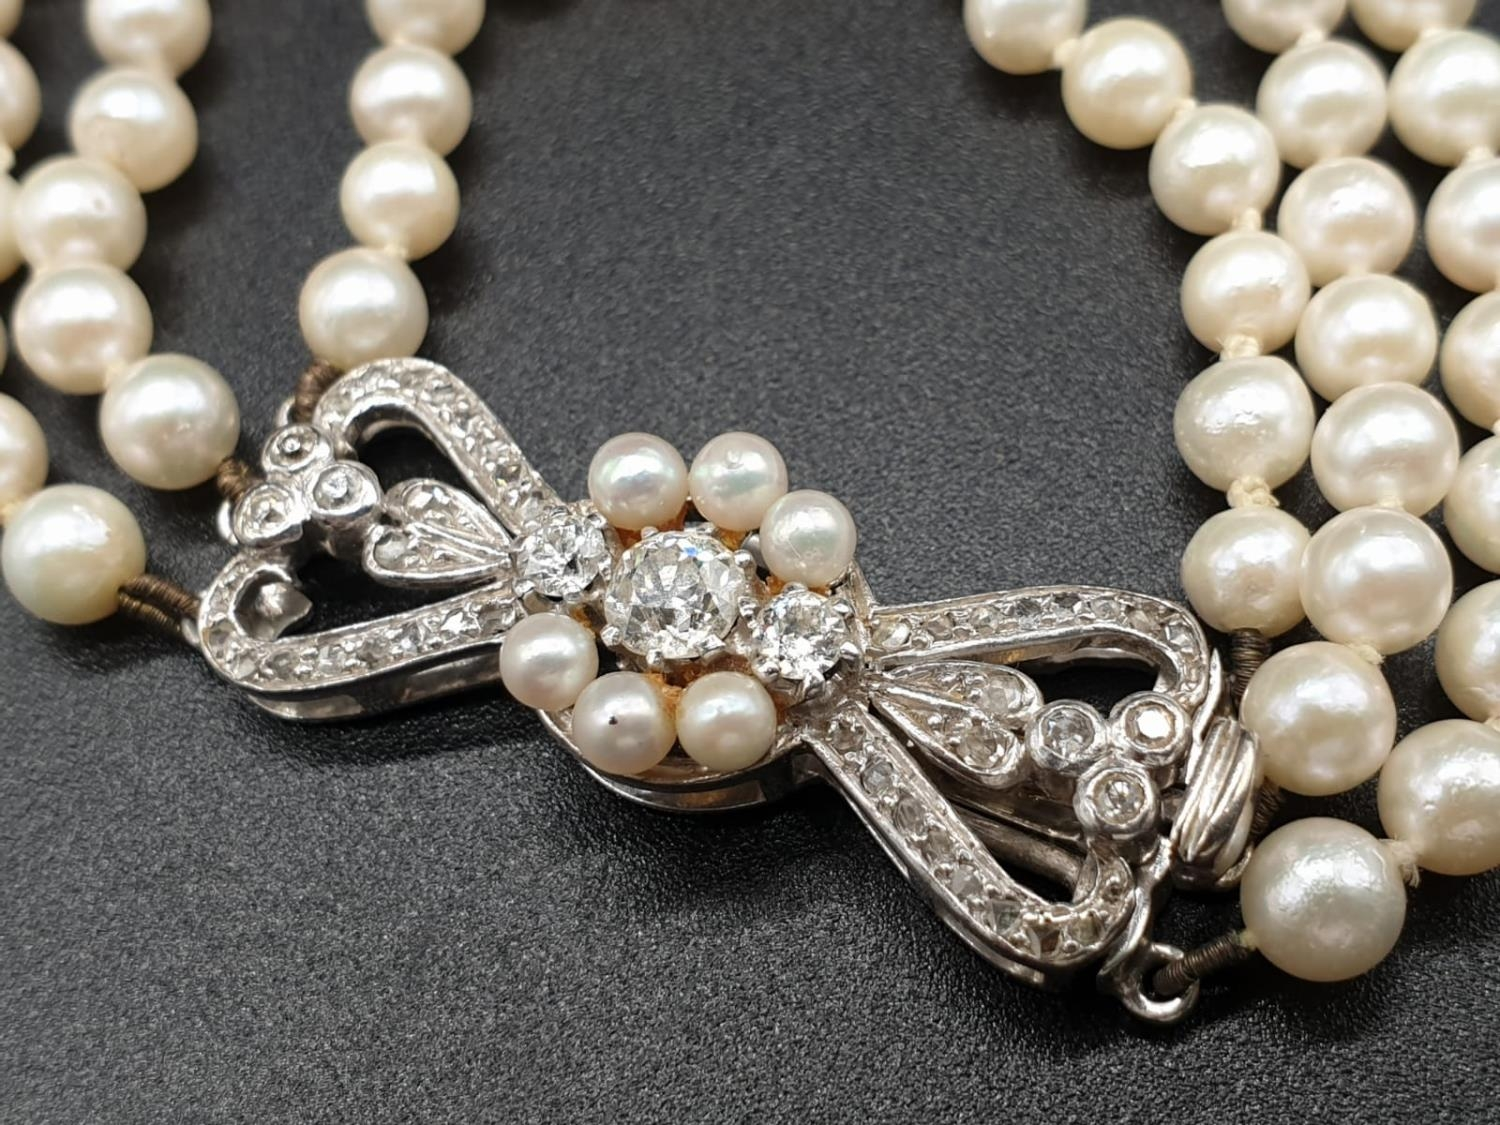 A 3 ROW GRADUATED PEARL NECKLACE WITH PLATINUM AND DIAMOND CLASP 48gms and 18cms in length - Image 3 of 6